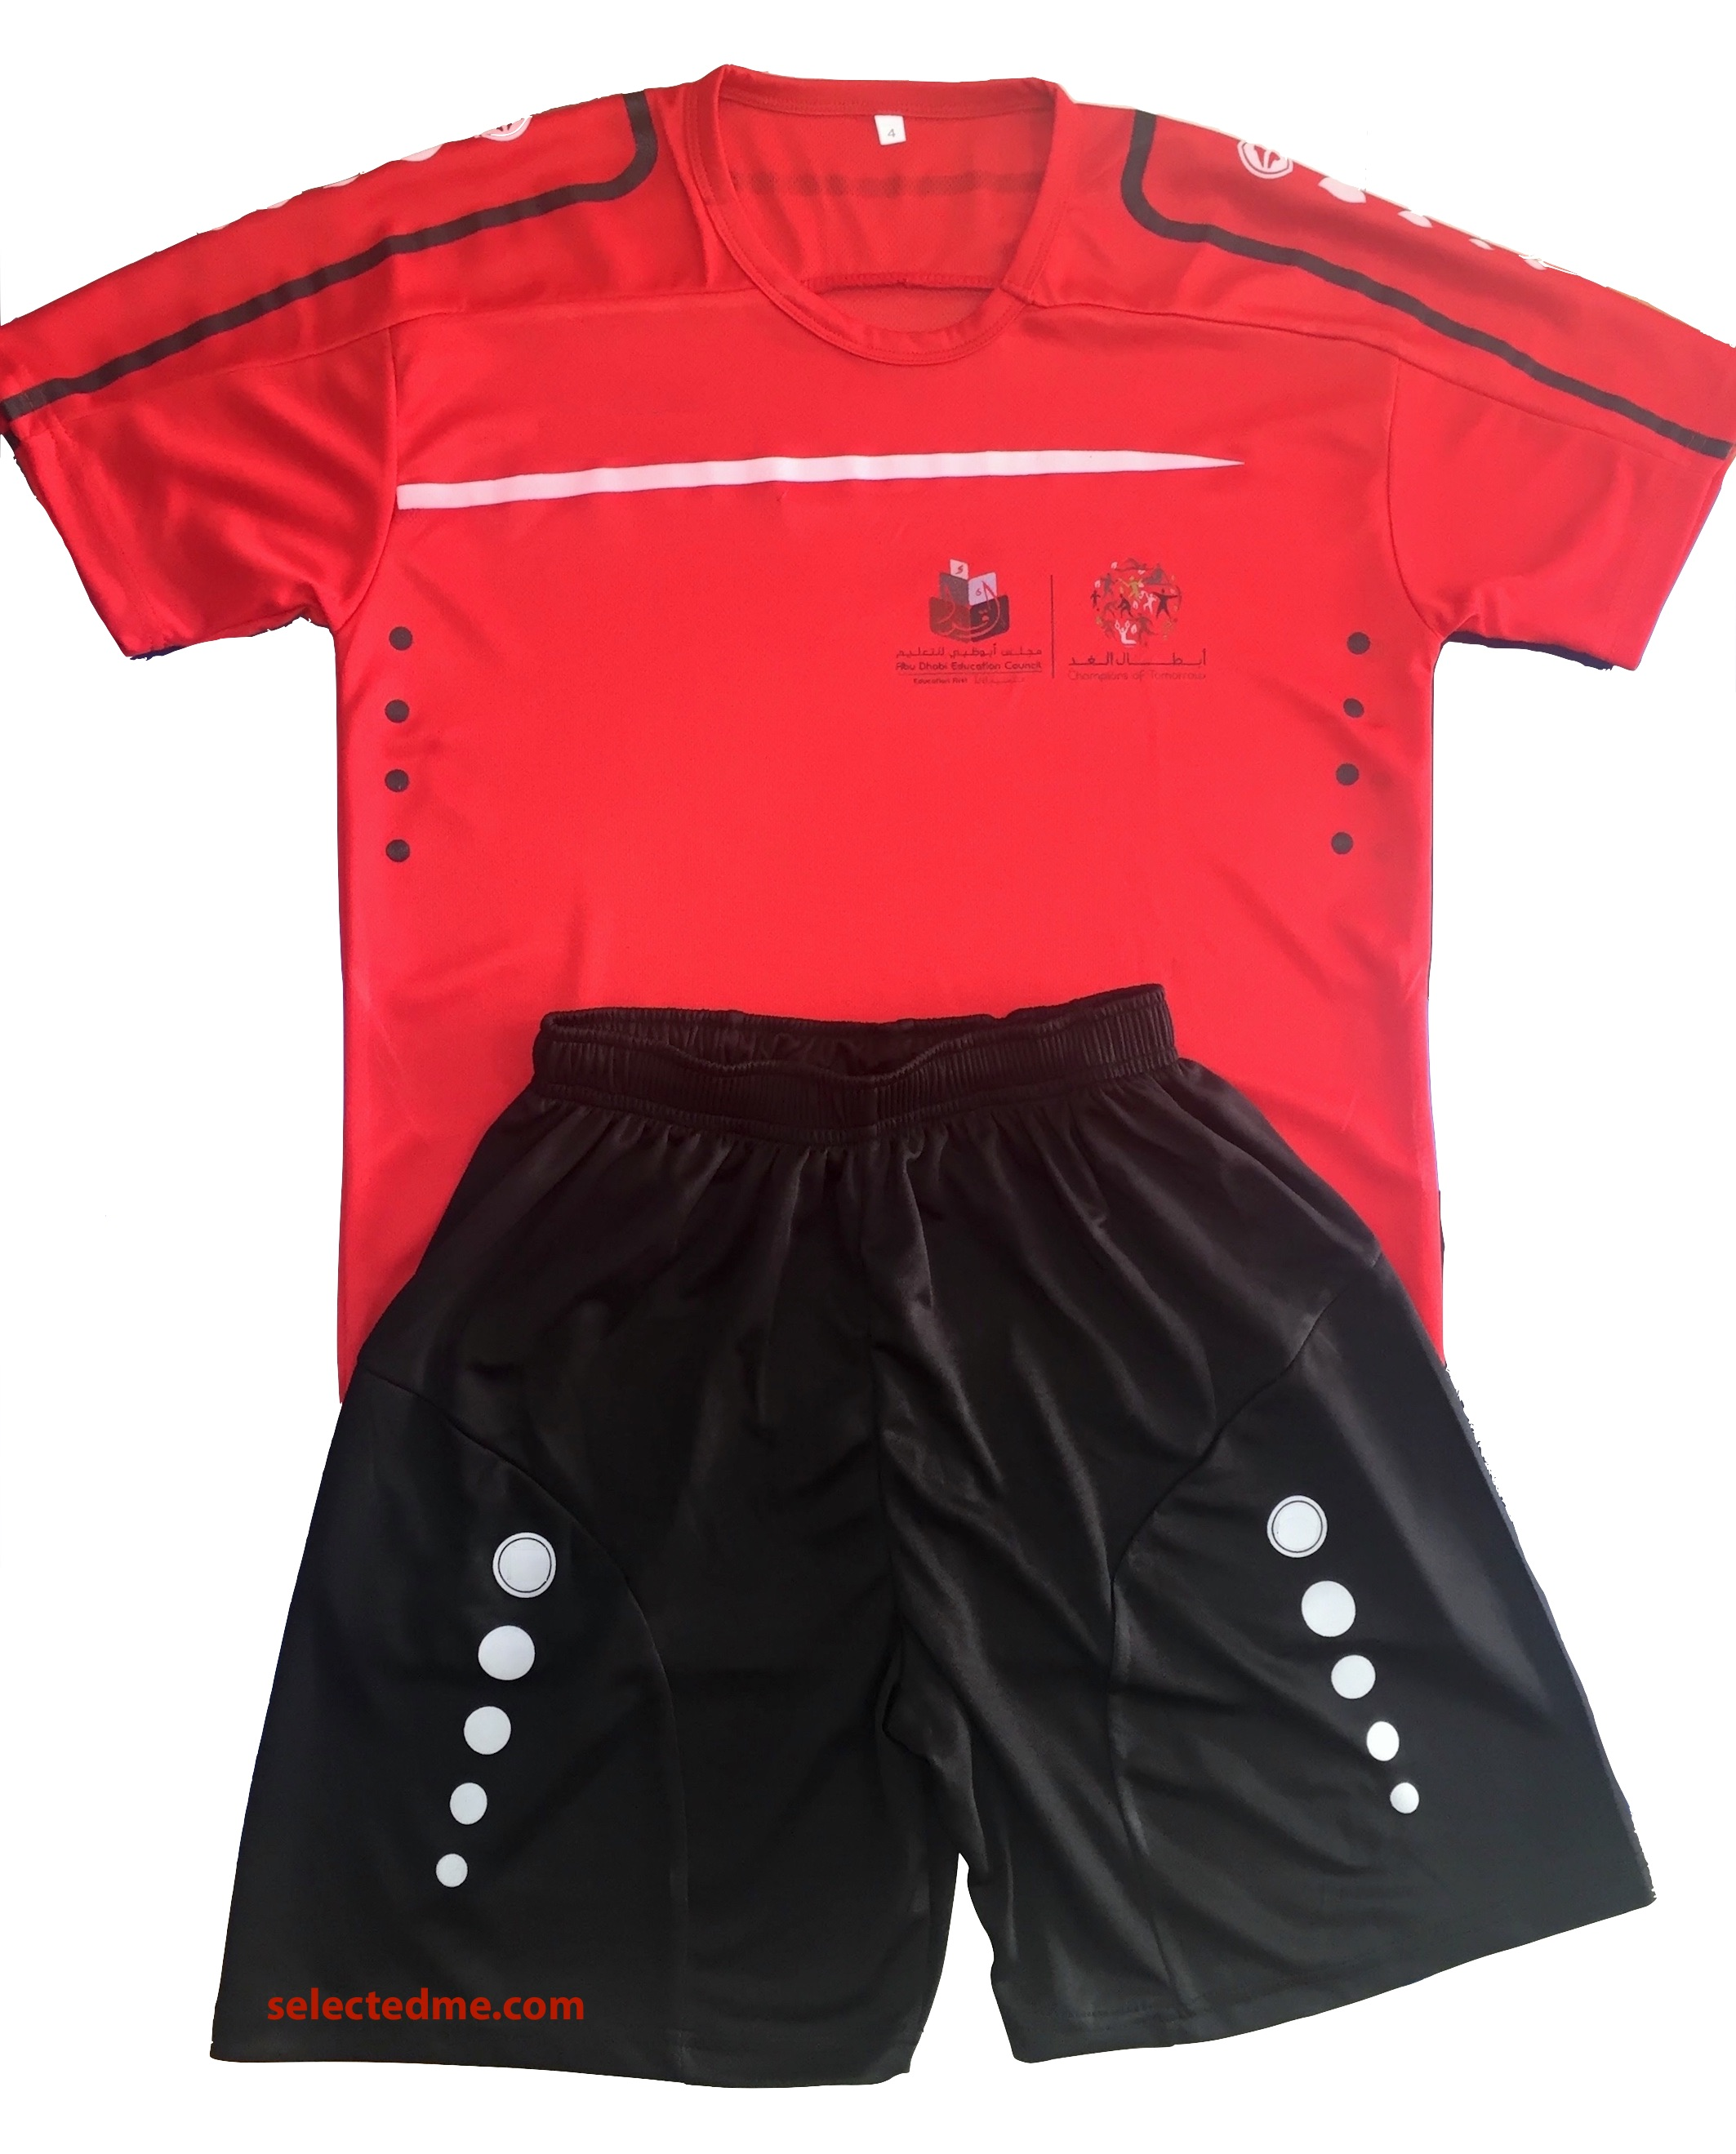 Sports T-shirts Tops & Bottom shorts custom made in Dubai UAE